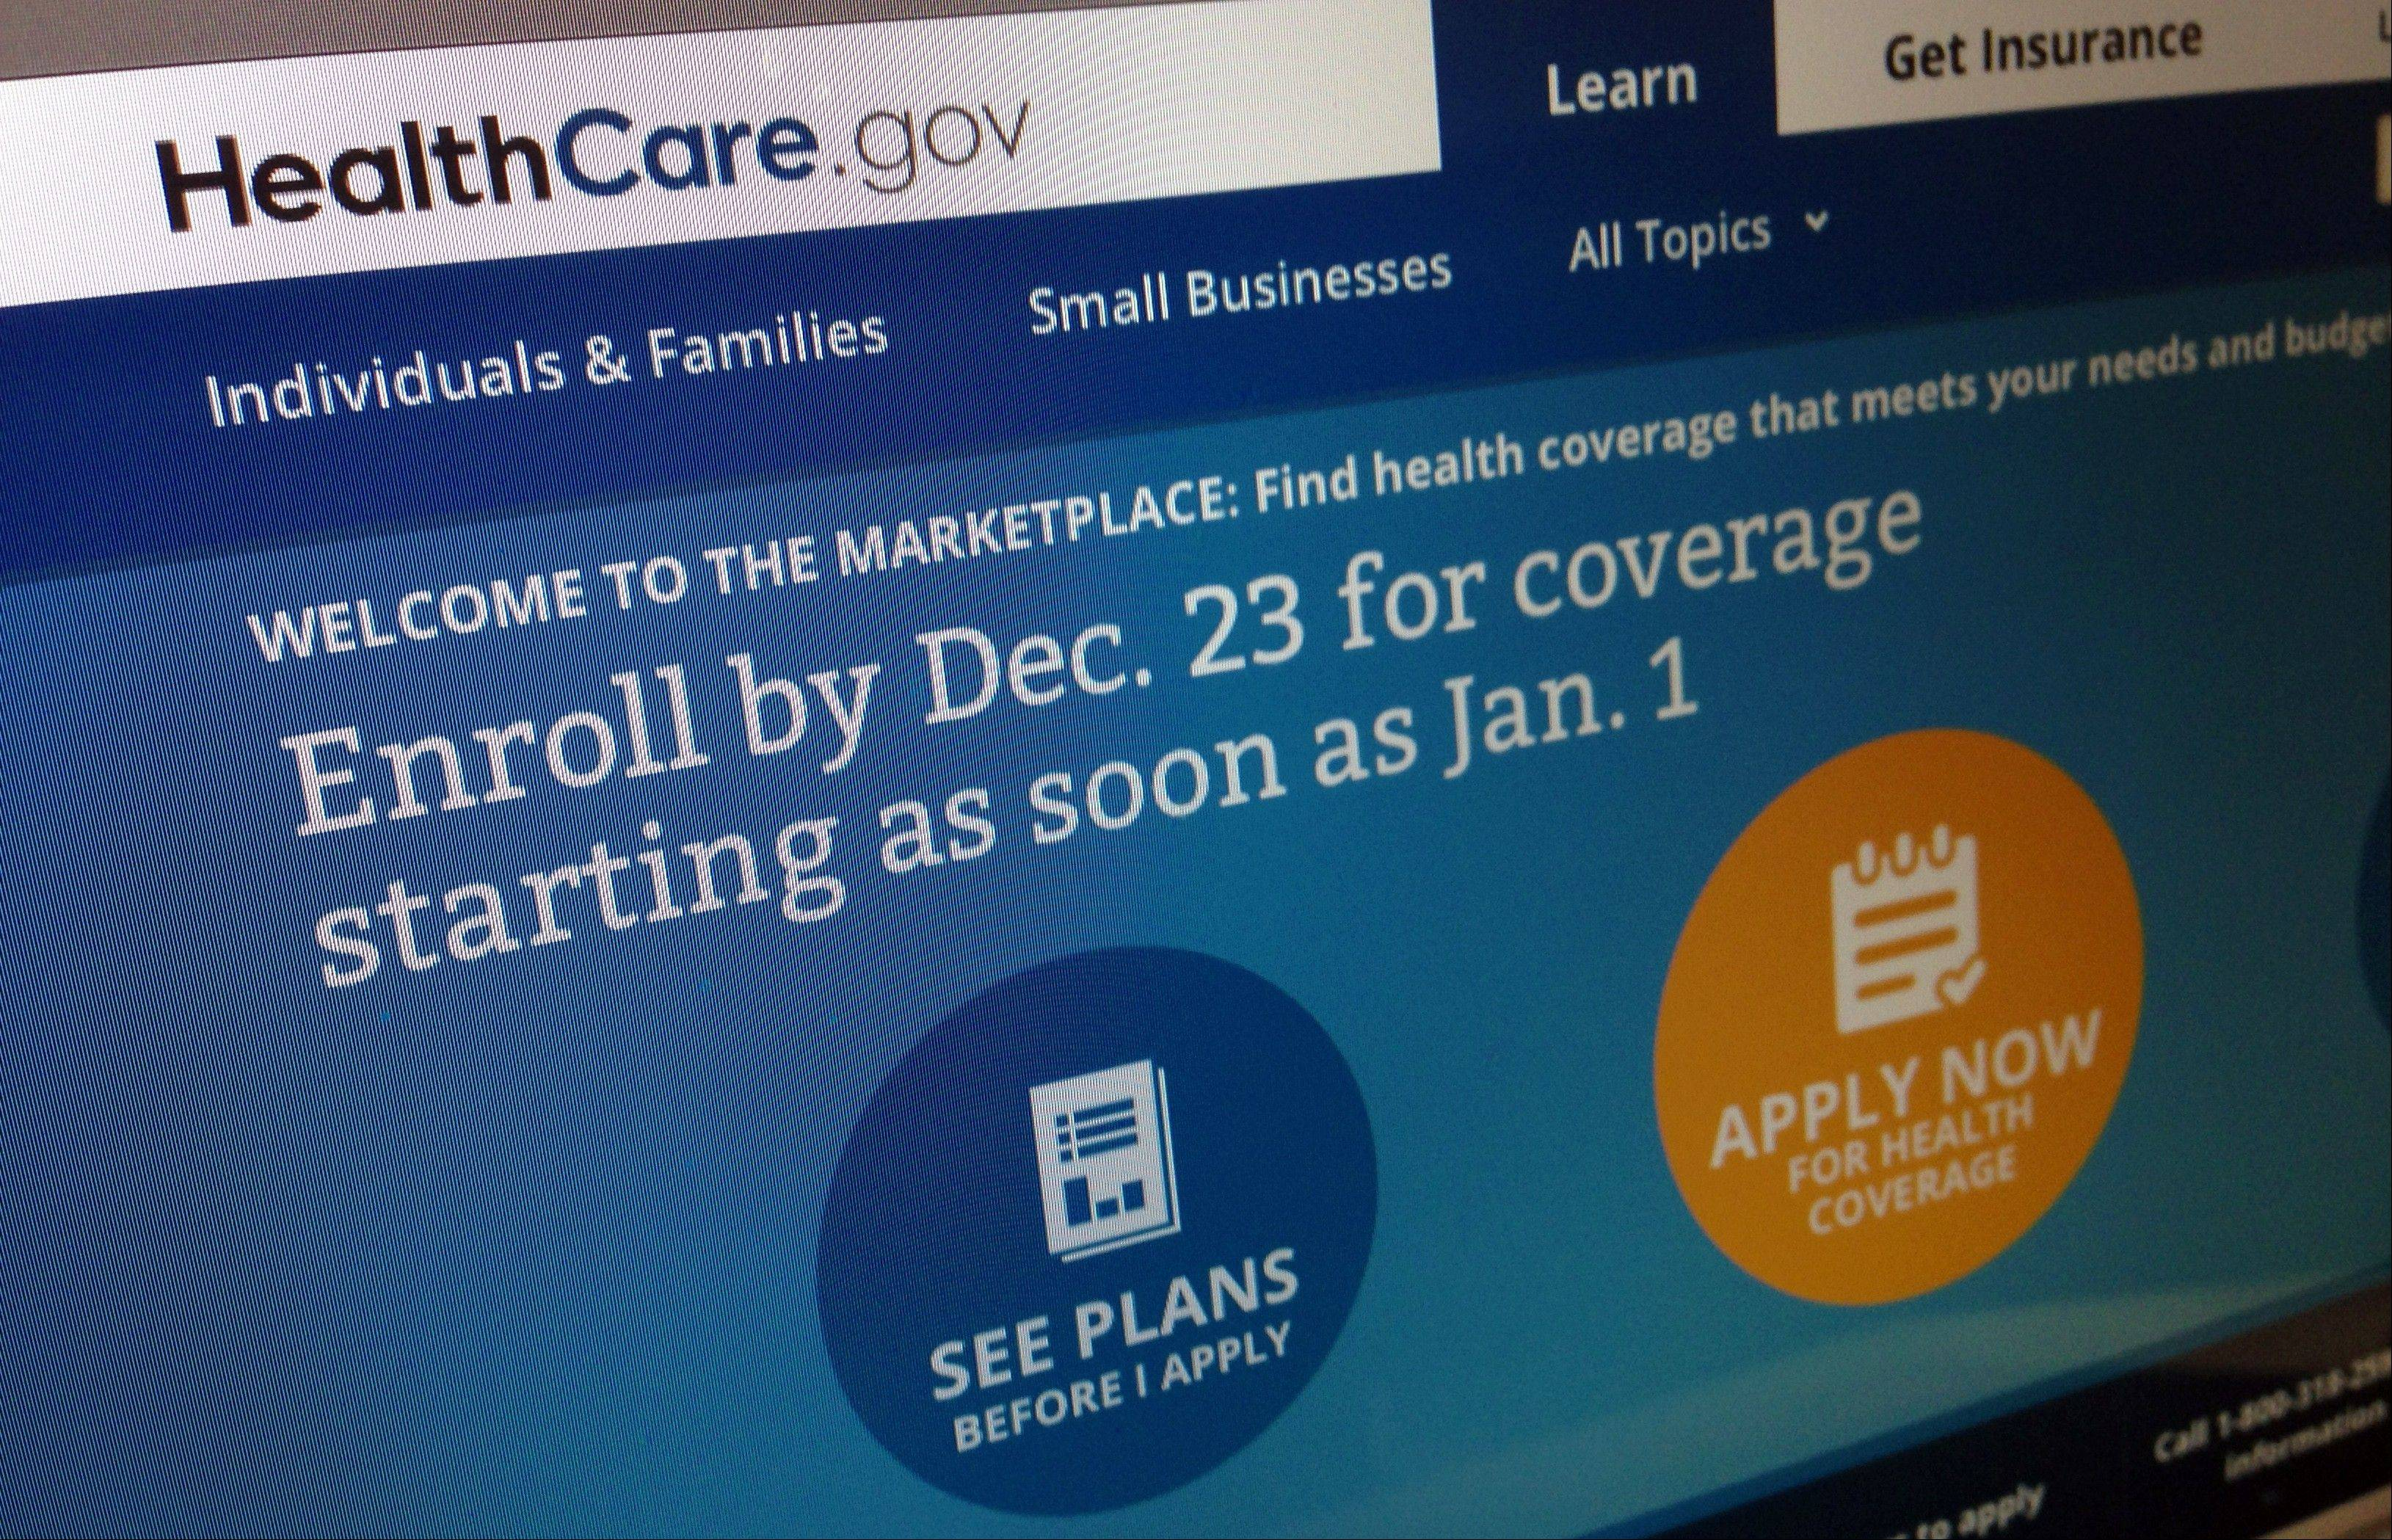 What if you missed the Christmas Eve deadline and still want insurance in 2014, as the health law requires of most Americans? You may be without health insurance for a month, but you can still sign up for coverage that will start in February.